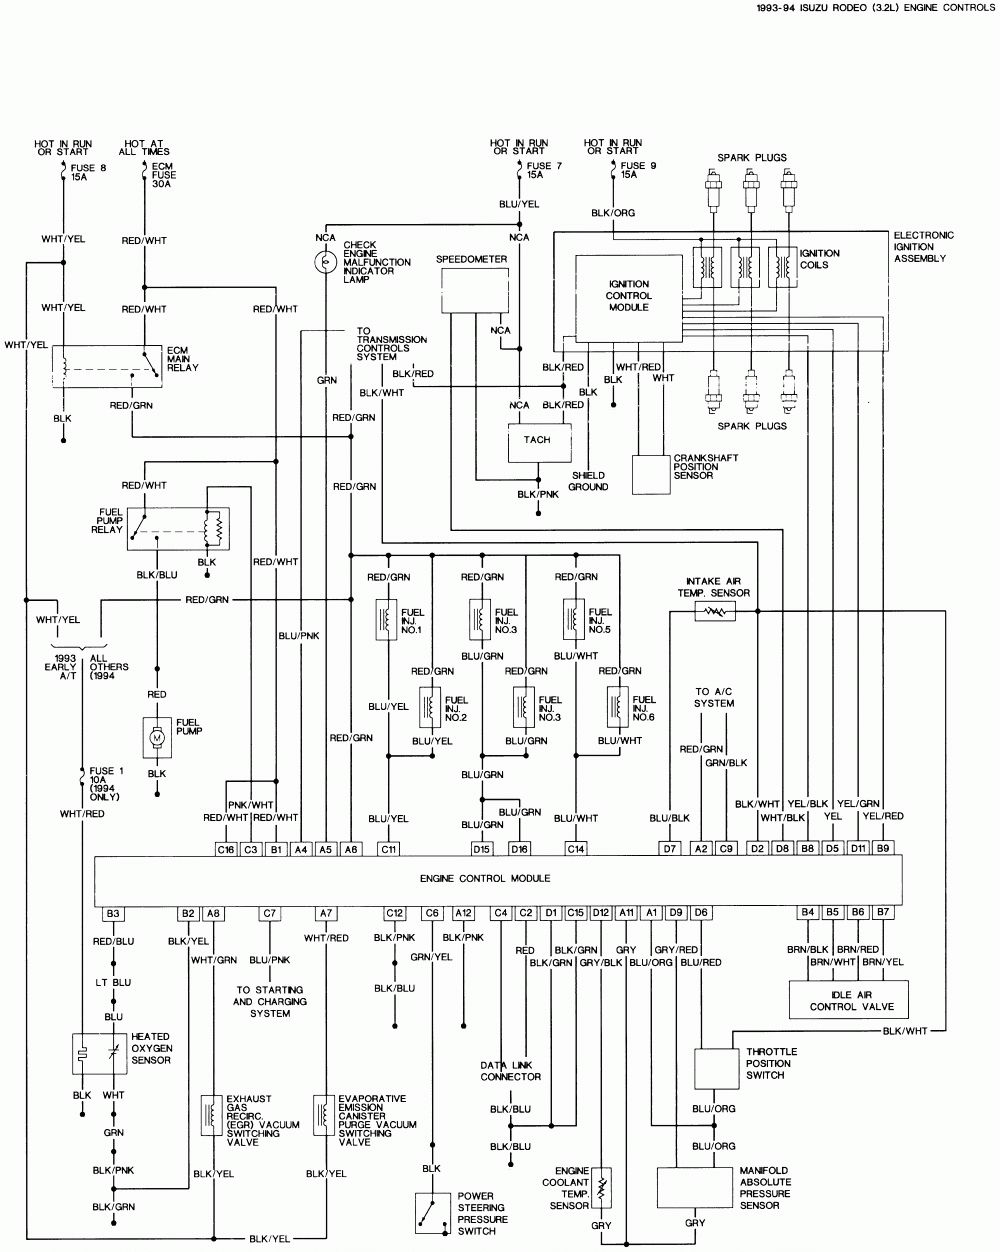 [DIAGRAM_5NL]  Isuzu Wiring Schematic - Impala Defrost Wiring Diagram for Wiring Diagram  Schematics | 1993 Isuzu Rodeo Stereo Wiring Diagram |  | Wiring Diagram Schematics